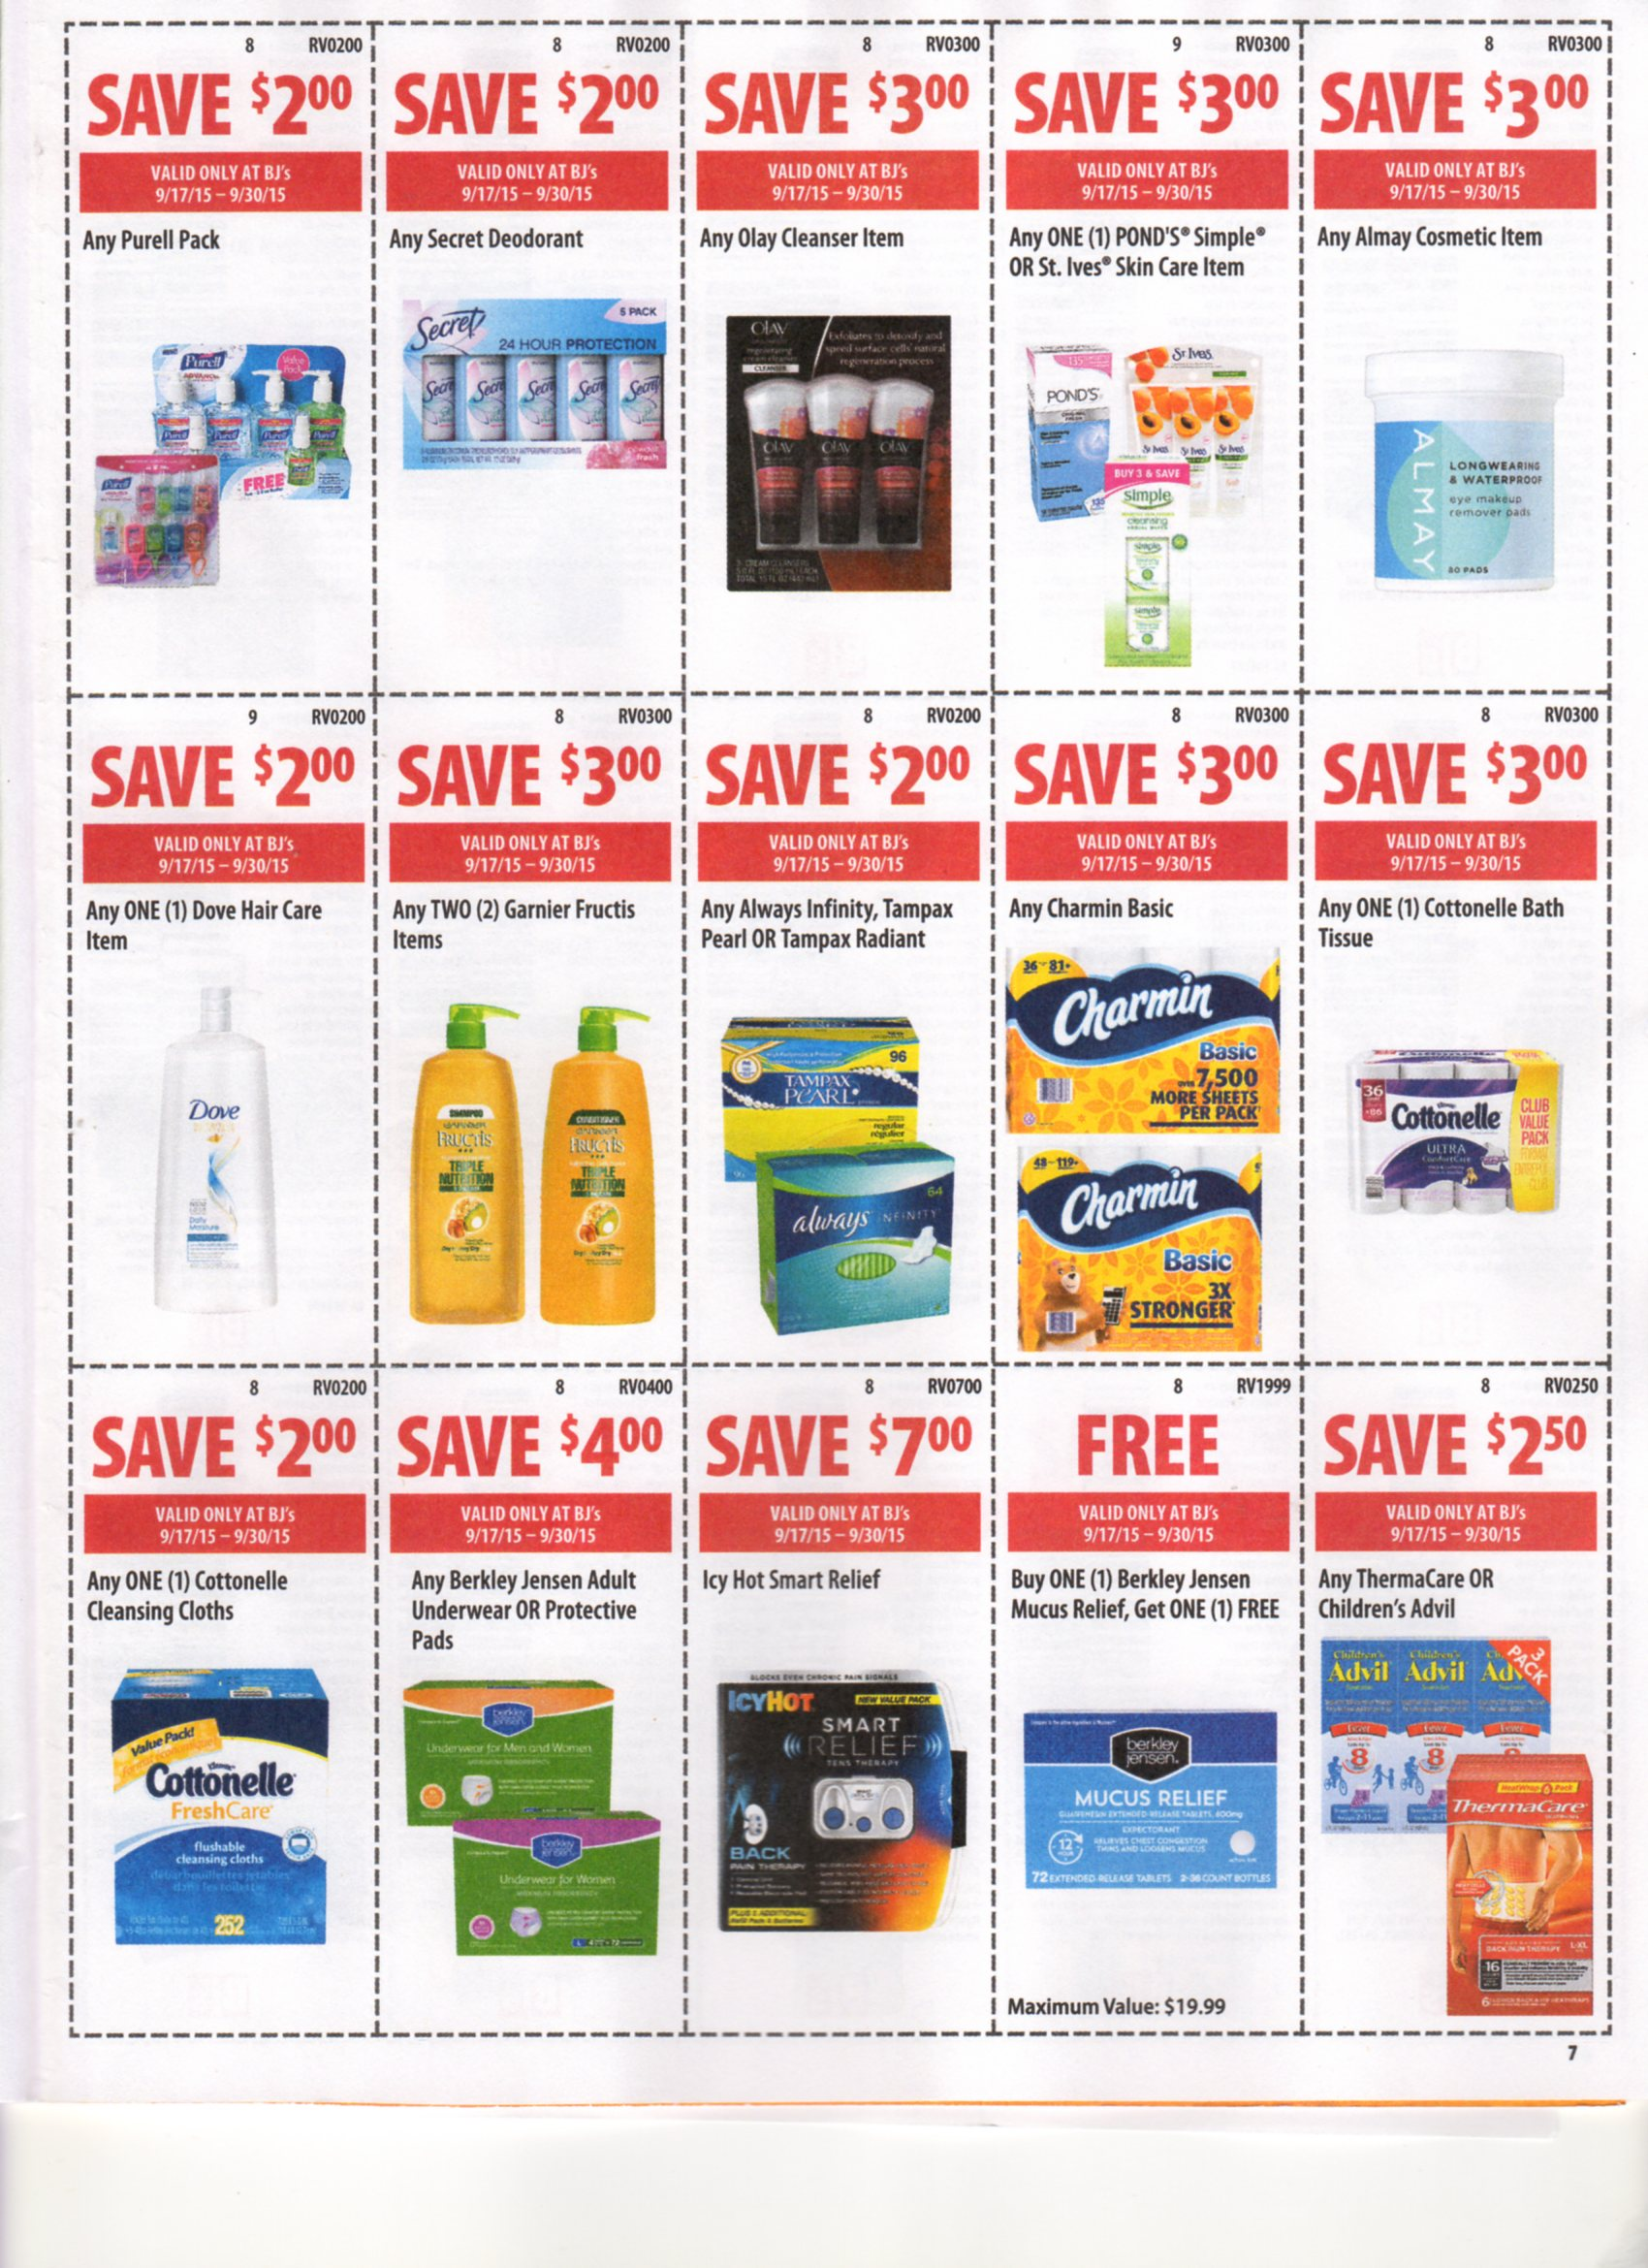 image relating to Bjs Printable Coupons referred to as BJs Entrance of Doorway Coupon Matchups 9/17-9/30/15 My BJs